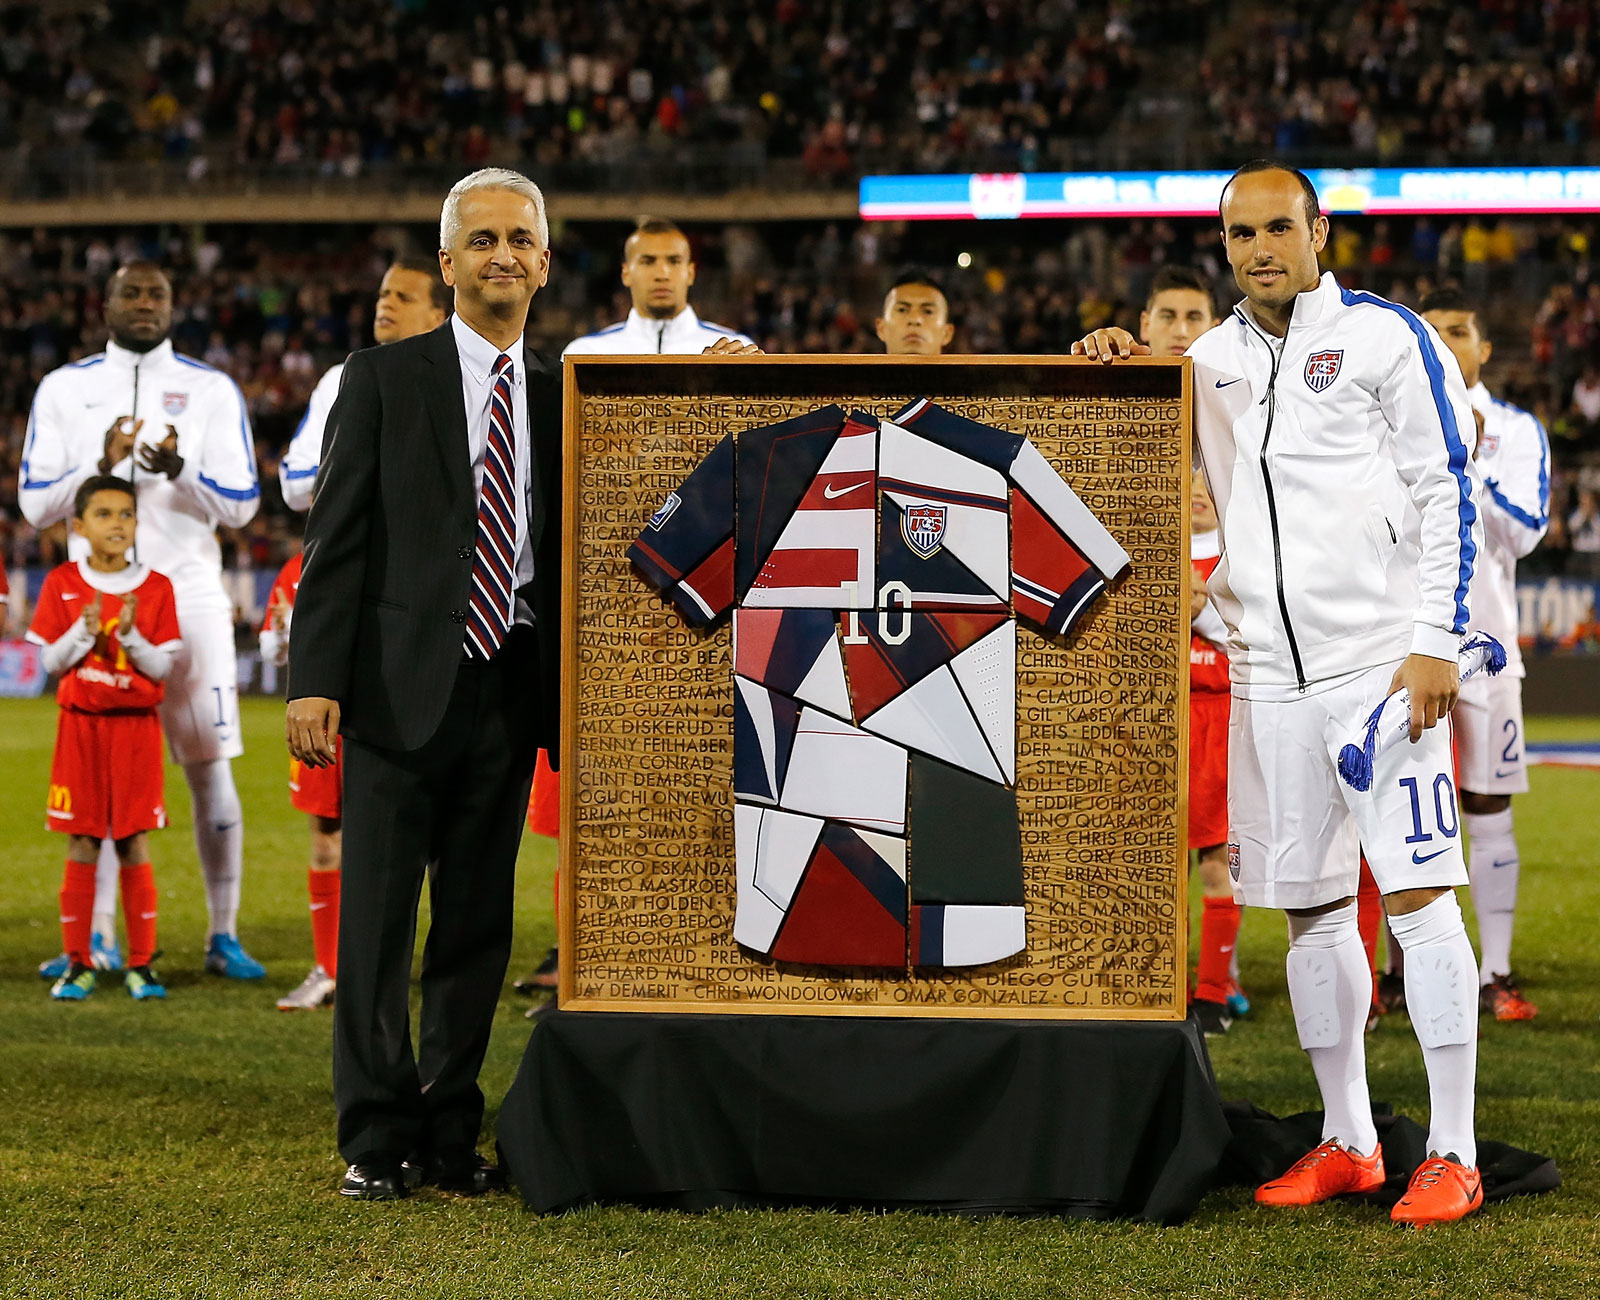 Landon Donovan and Sunil Gulati pose before the star's final game in a U.S. uniform